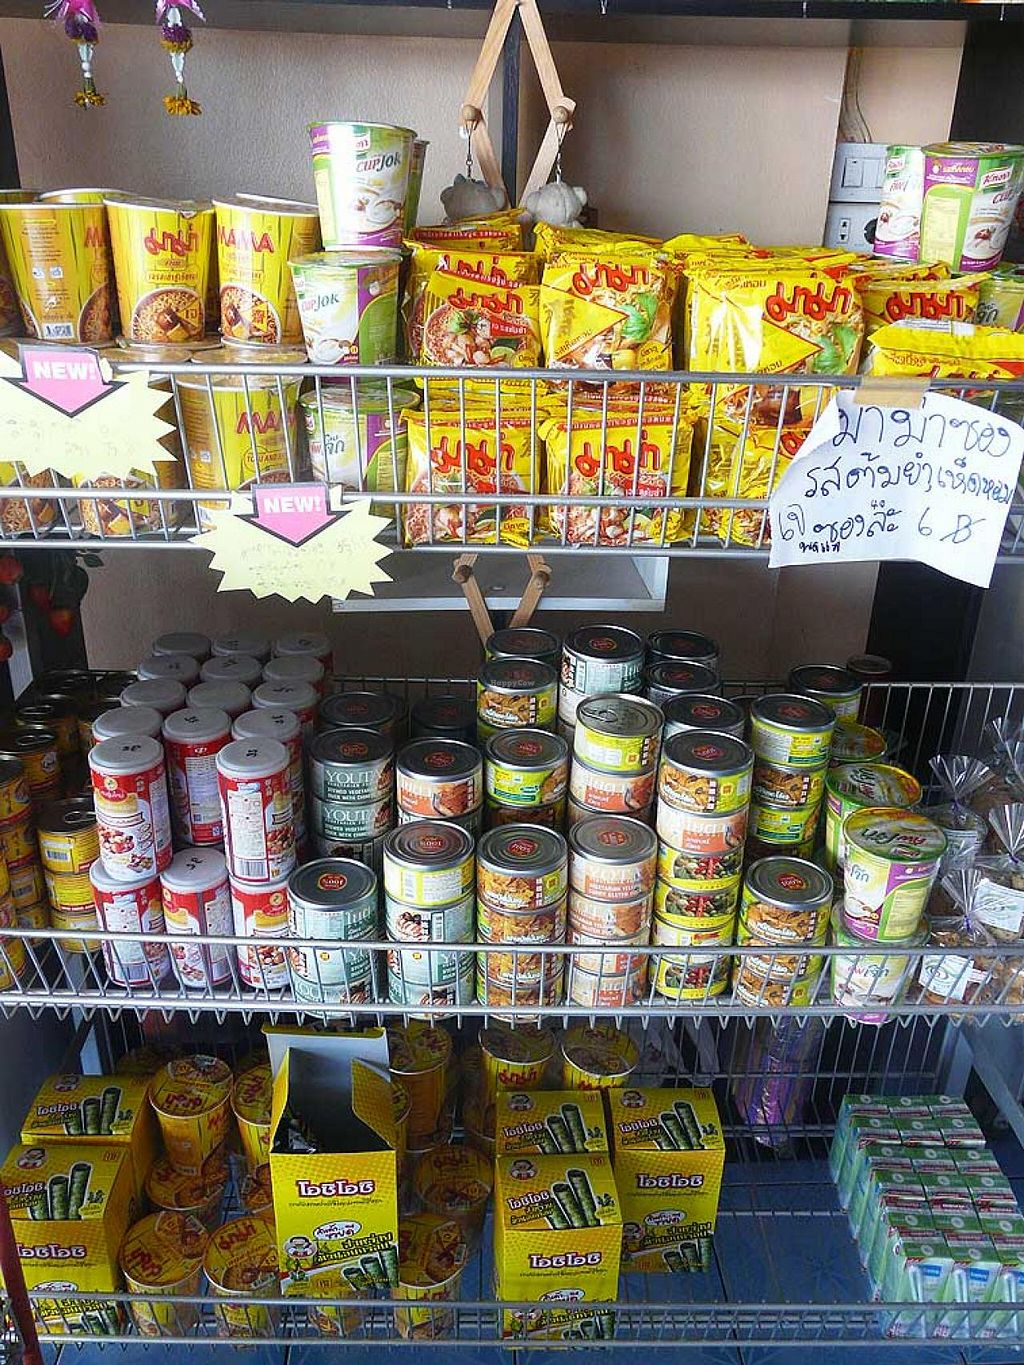 "Photo of CLOSED: Jay - Possi Road  by <a href=""/members/profile/The%20Hammer"">The Hammer</a> <br/>Selection of vegan foods. Small cans of vegan mock meats might be handy for vegan travelers while on the road.  <br/> January 11, 2014  - <a href='/contact/abuse/image/44616/62318'>Report</a>"